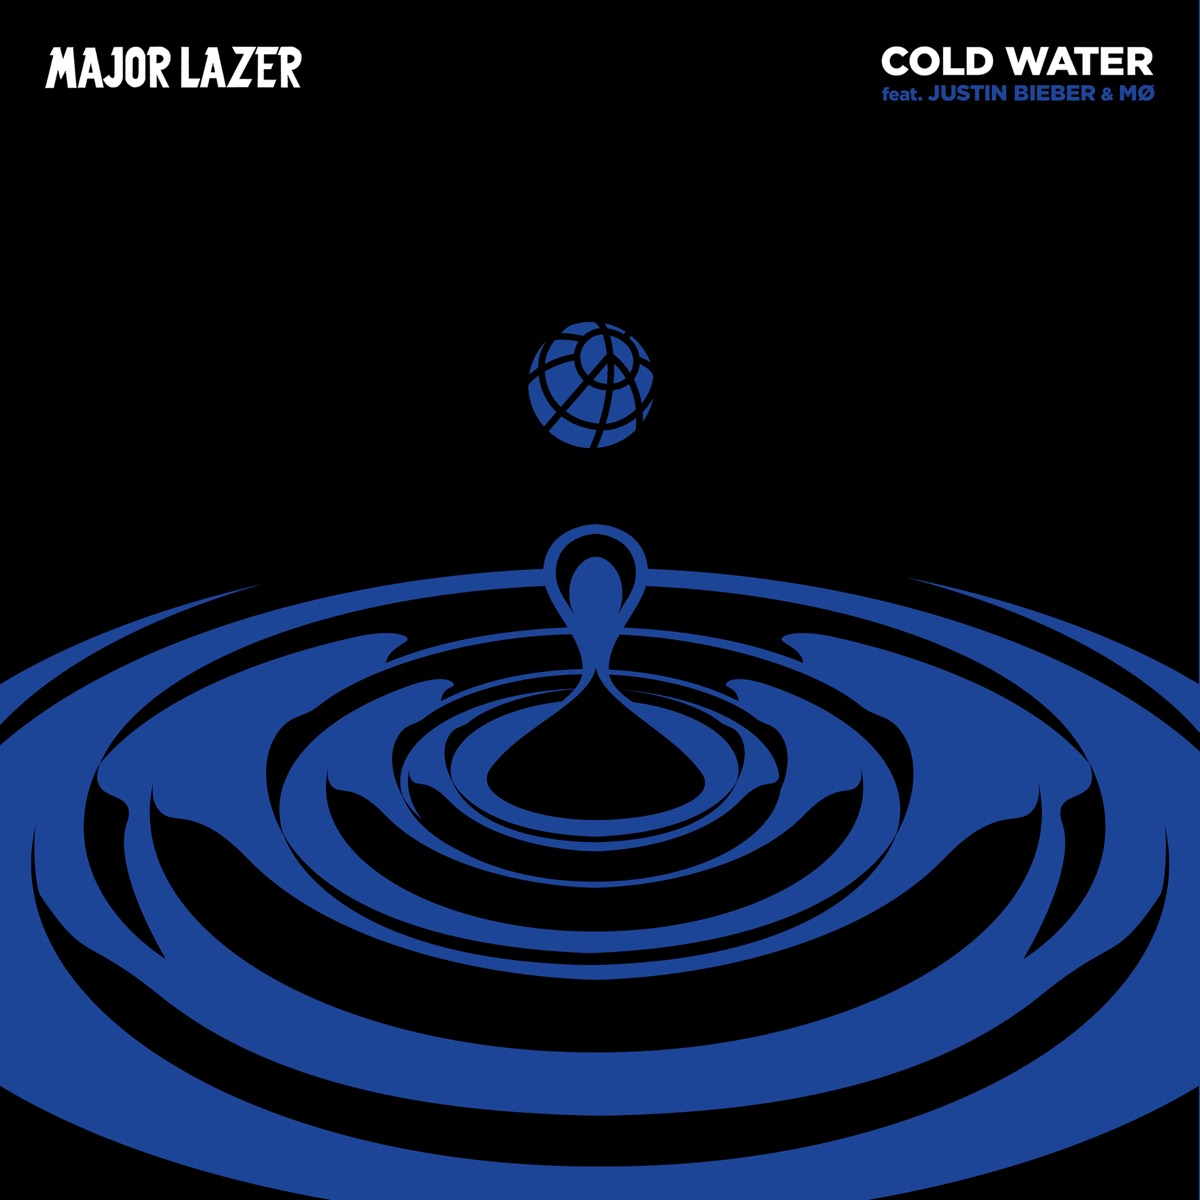 Cold Water feat Justin Bieber  MØ - Single Major Lazer CD cover